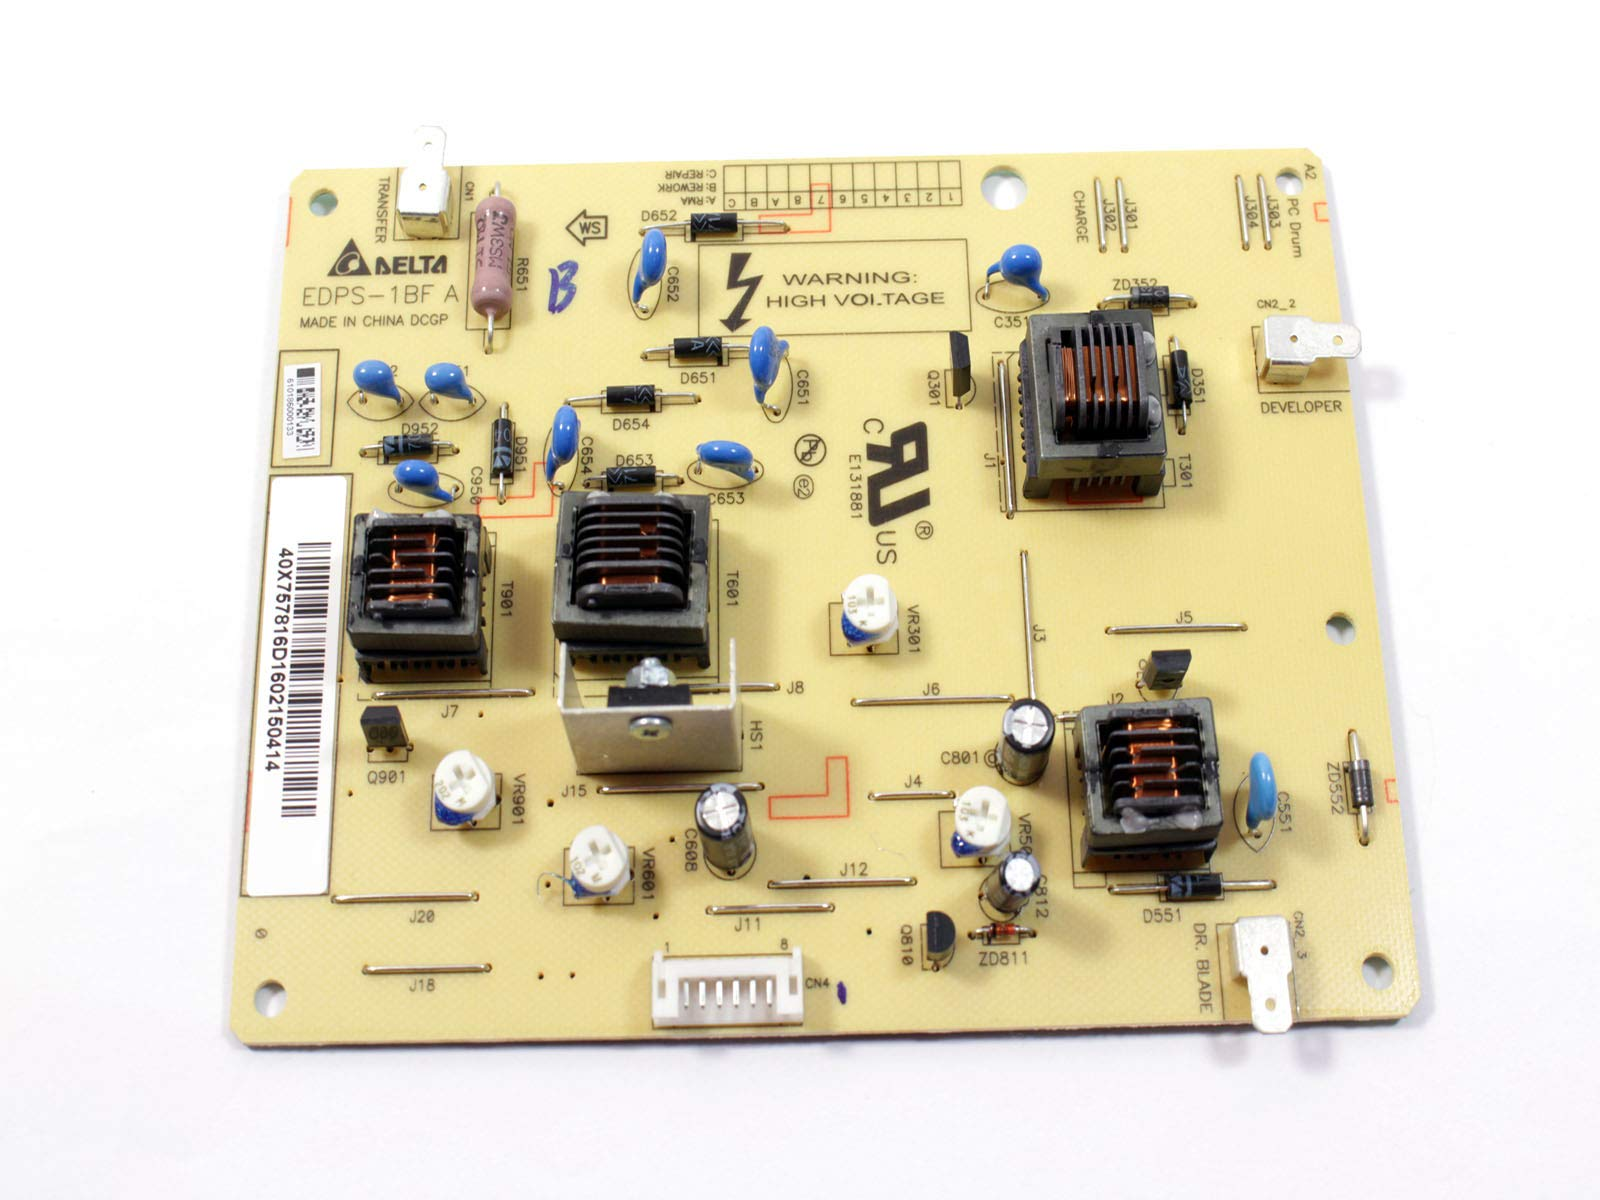 EbidDealz Genuine Power Supply Circuit Card Board EDPS-1BF A for Laser Printer B5460 B5465 B5465DNF & MS812de 6WT1V 06WT1V